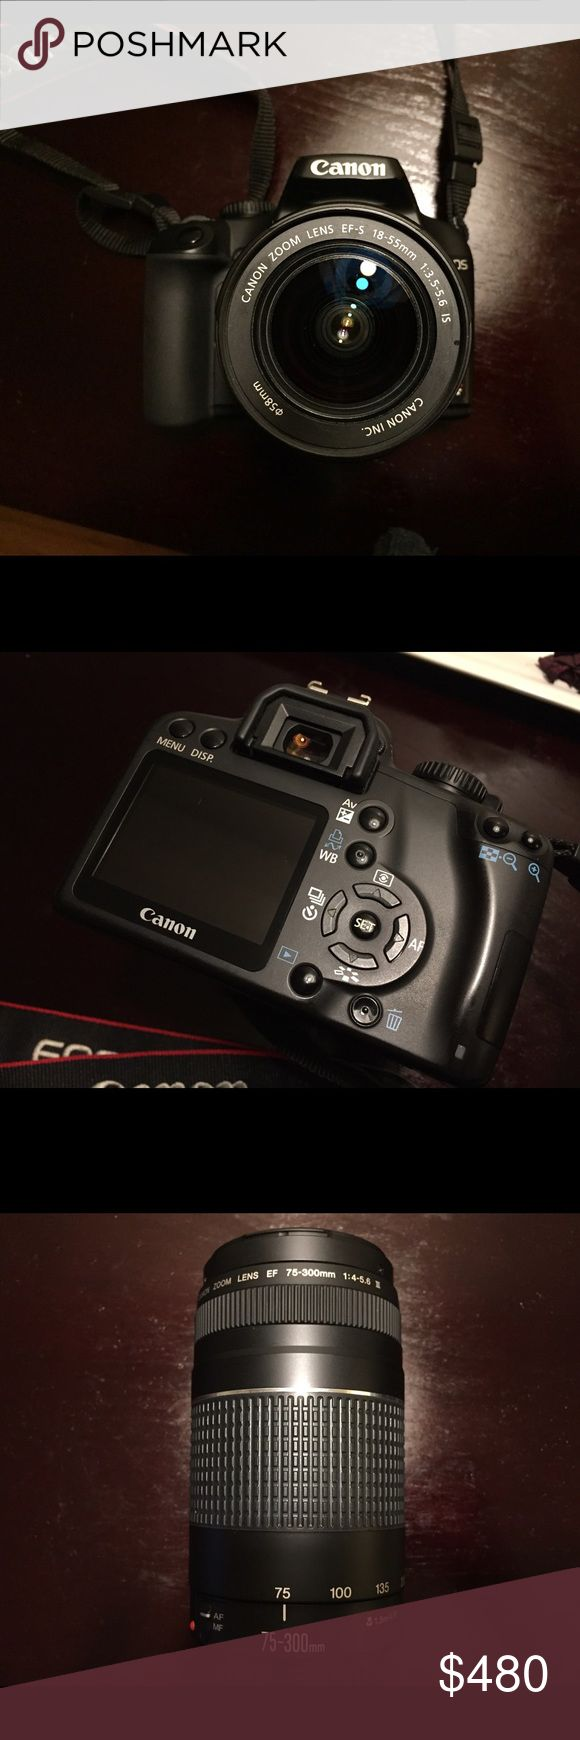 Canon Rebel XS eos 1000d + extra lens 🎥 Canon Rebel XS eos 1000d Camera • includes additional zoom lens • flash • gently used • excellent condition • includes bag for camera • includes shoulder strap • includes manual Canon Other